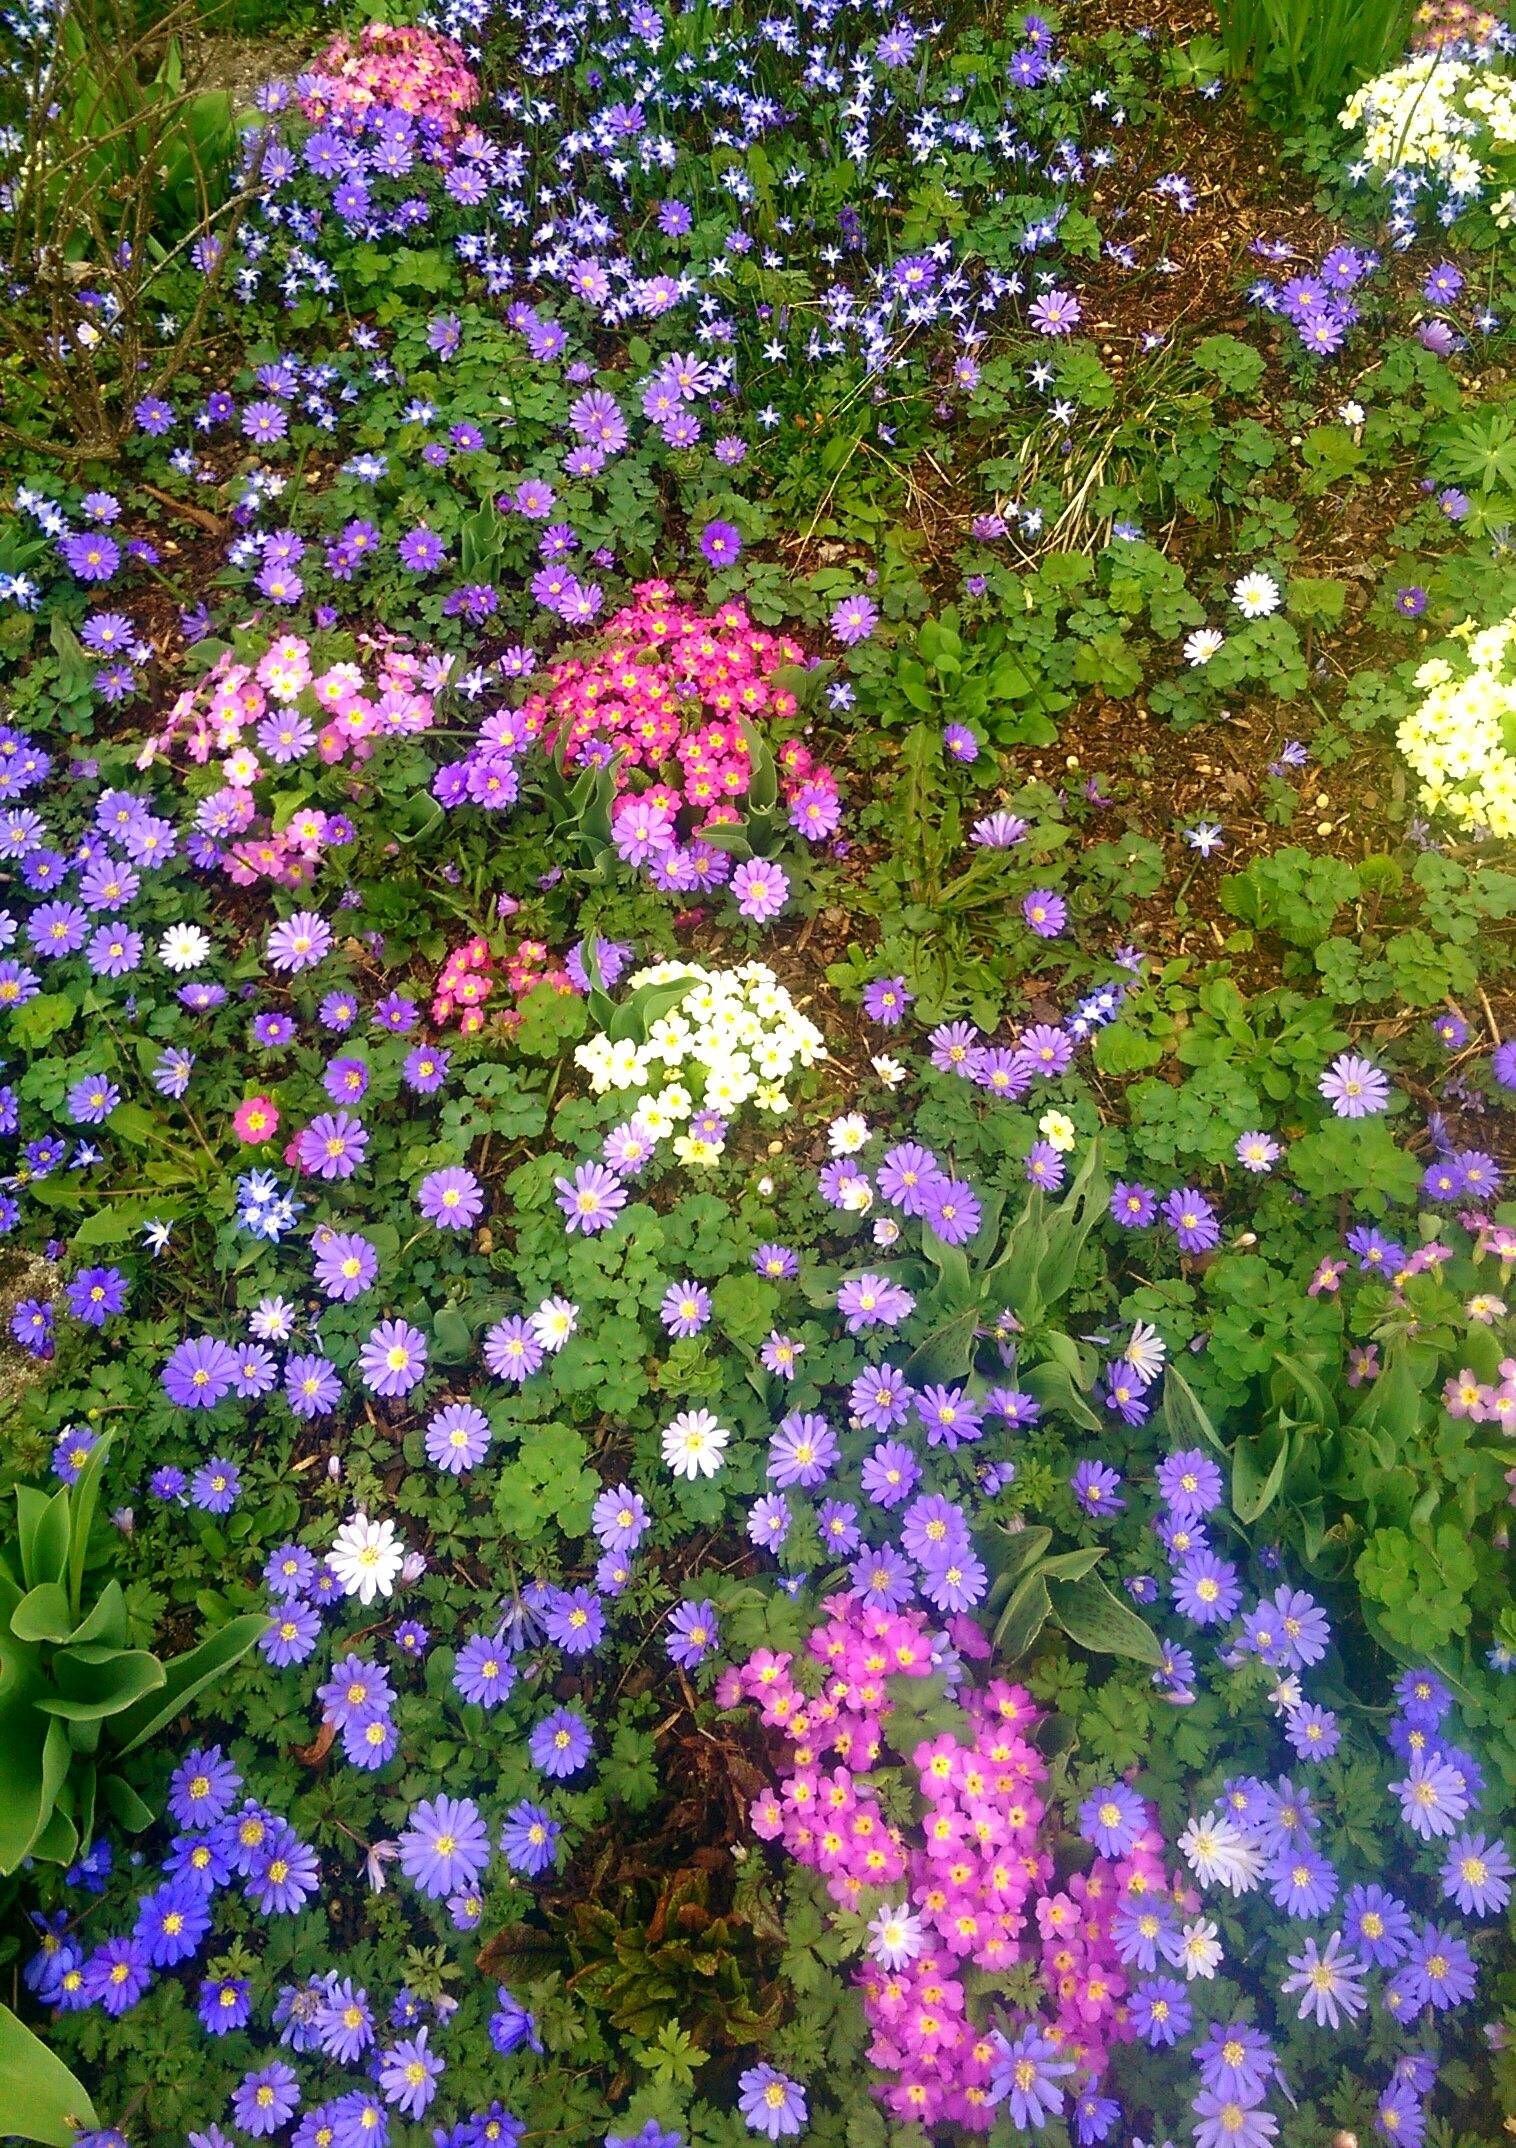 What flowers are these this is in germany btw whatsthisplant what flowers are these this is in germany btw whatsthisplant the blue white daisy shaped ones are windflower anemone bulbs and the pink with izmirmasajfo